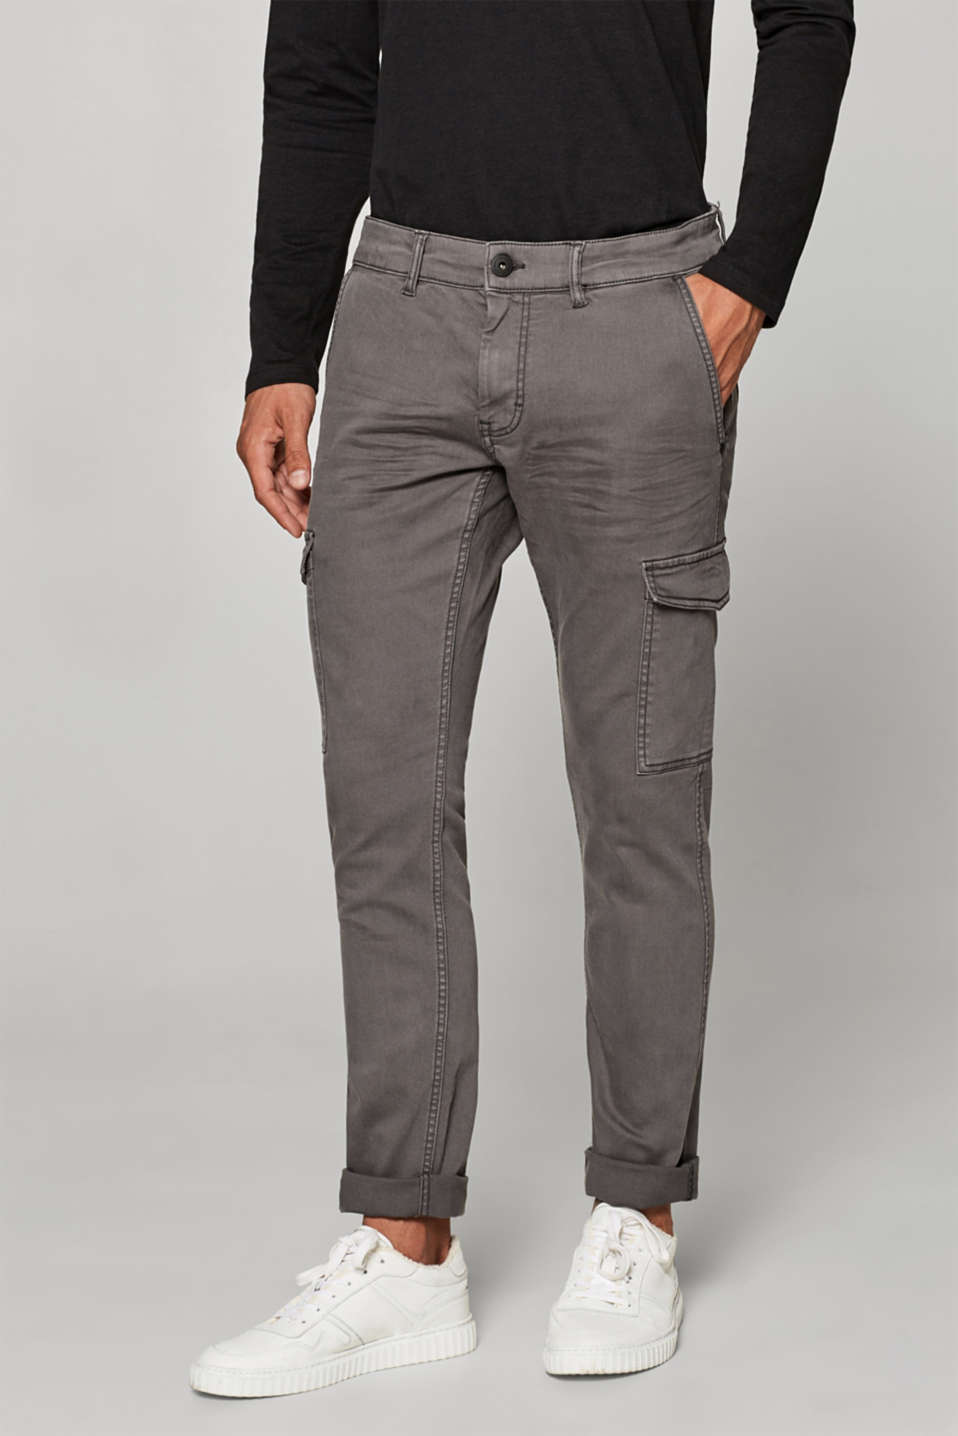 edc - Stretch jeans with cargo pockets